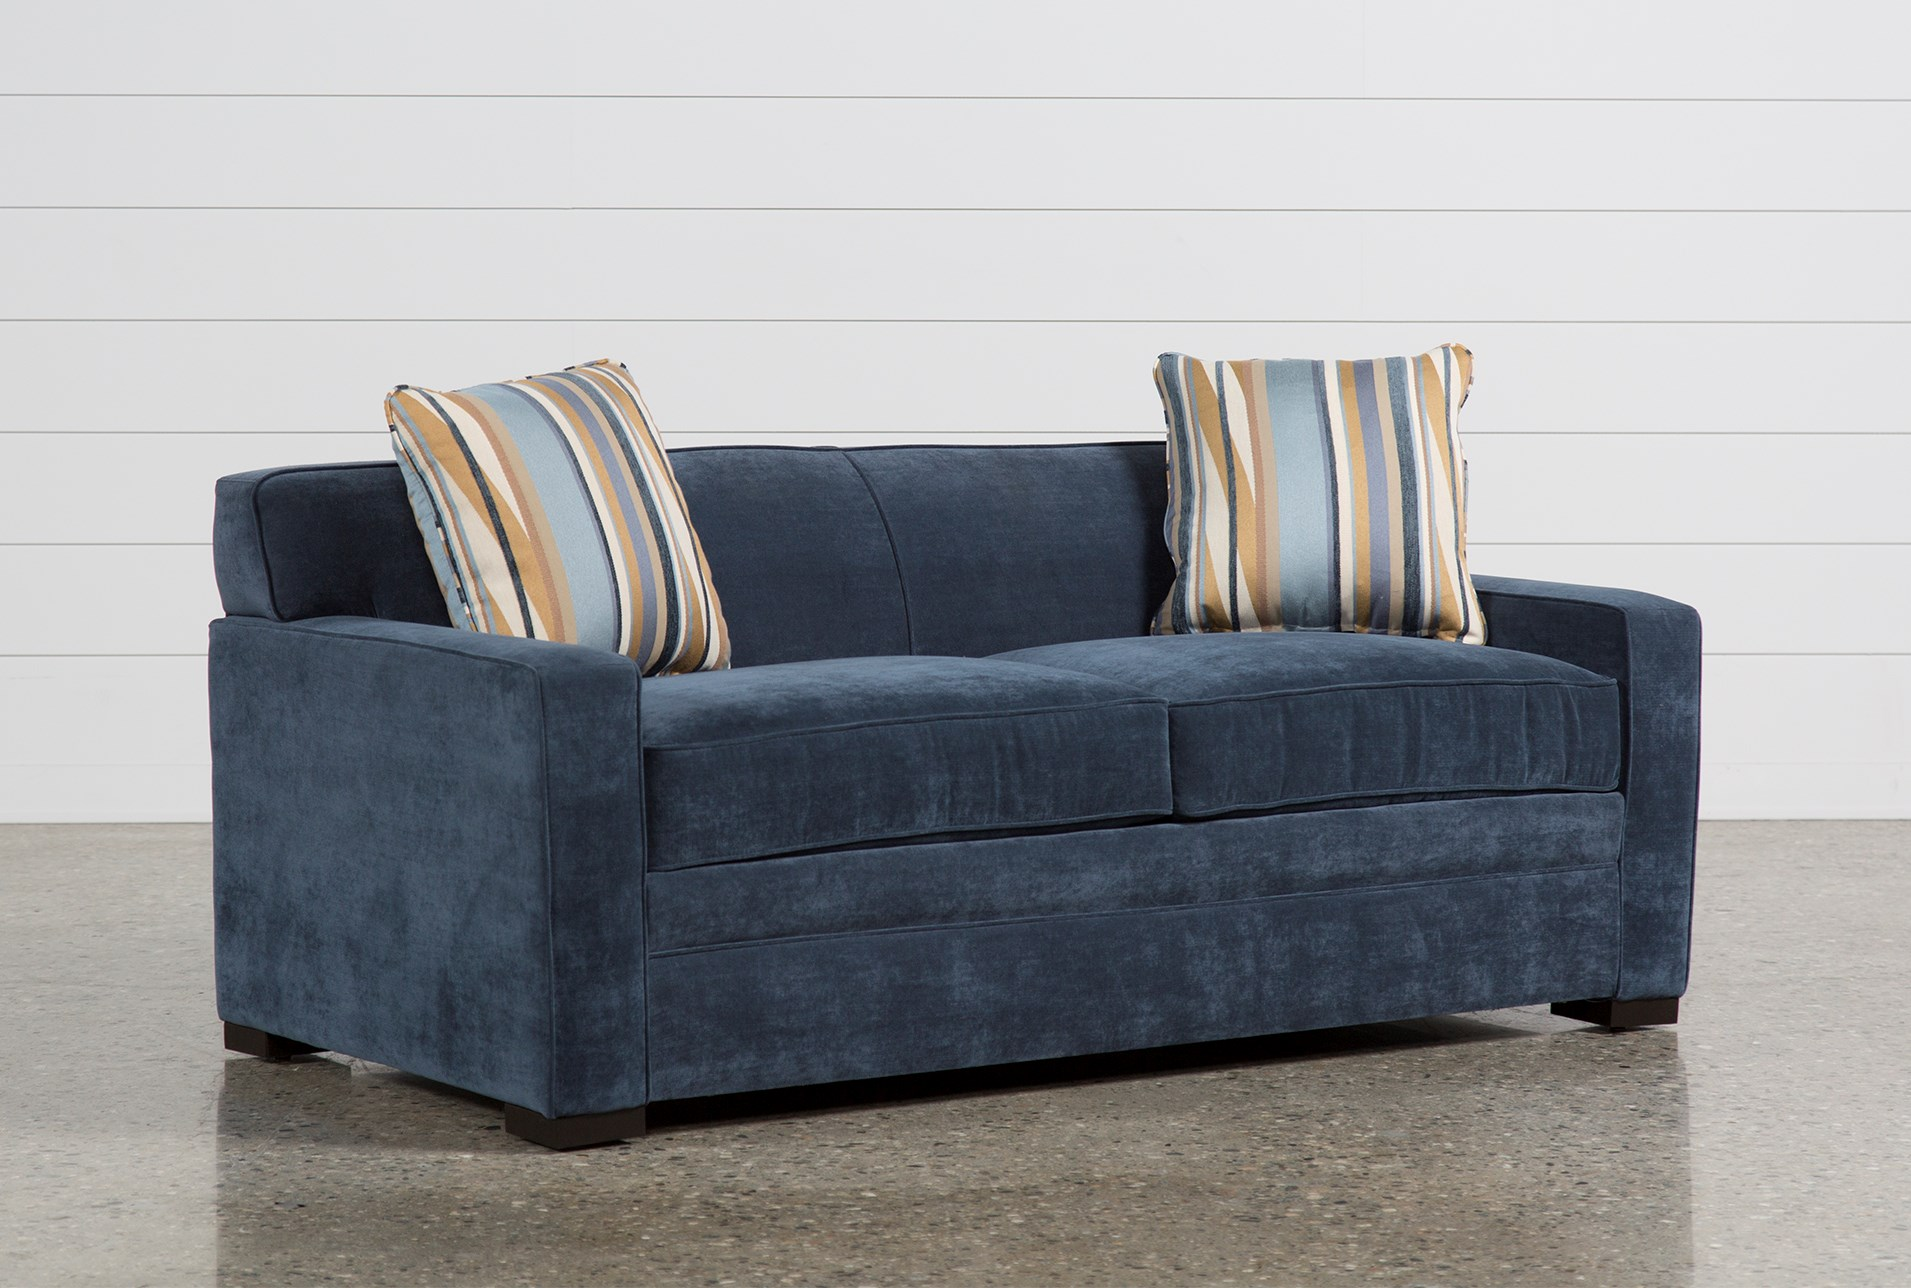 Sofa Beds Free Assembly with Delivery